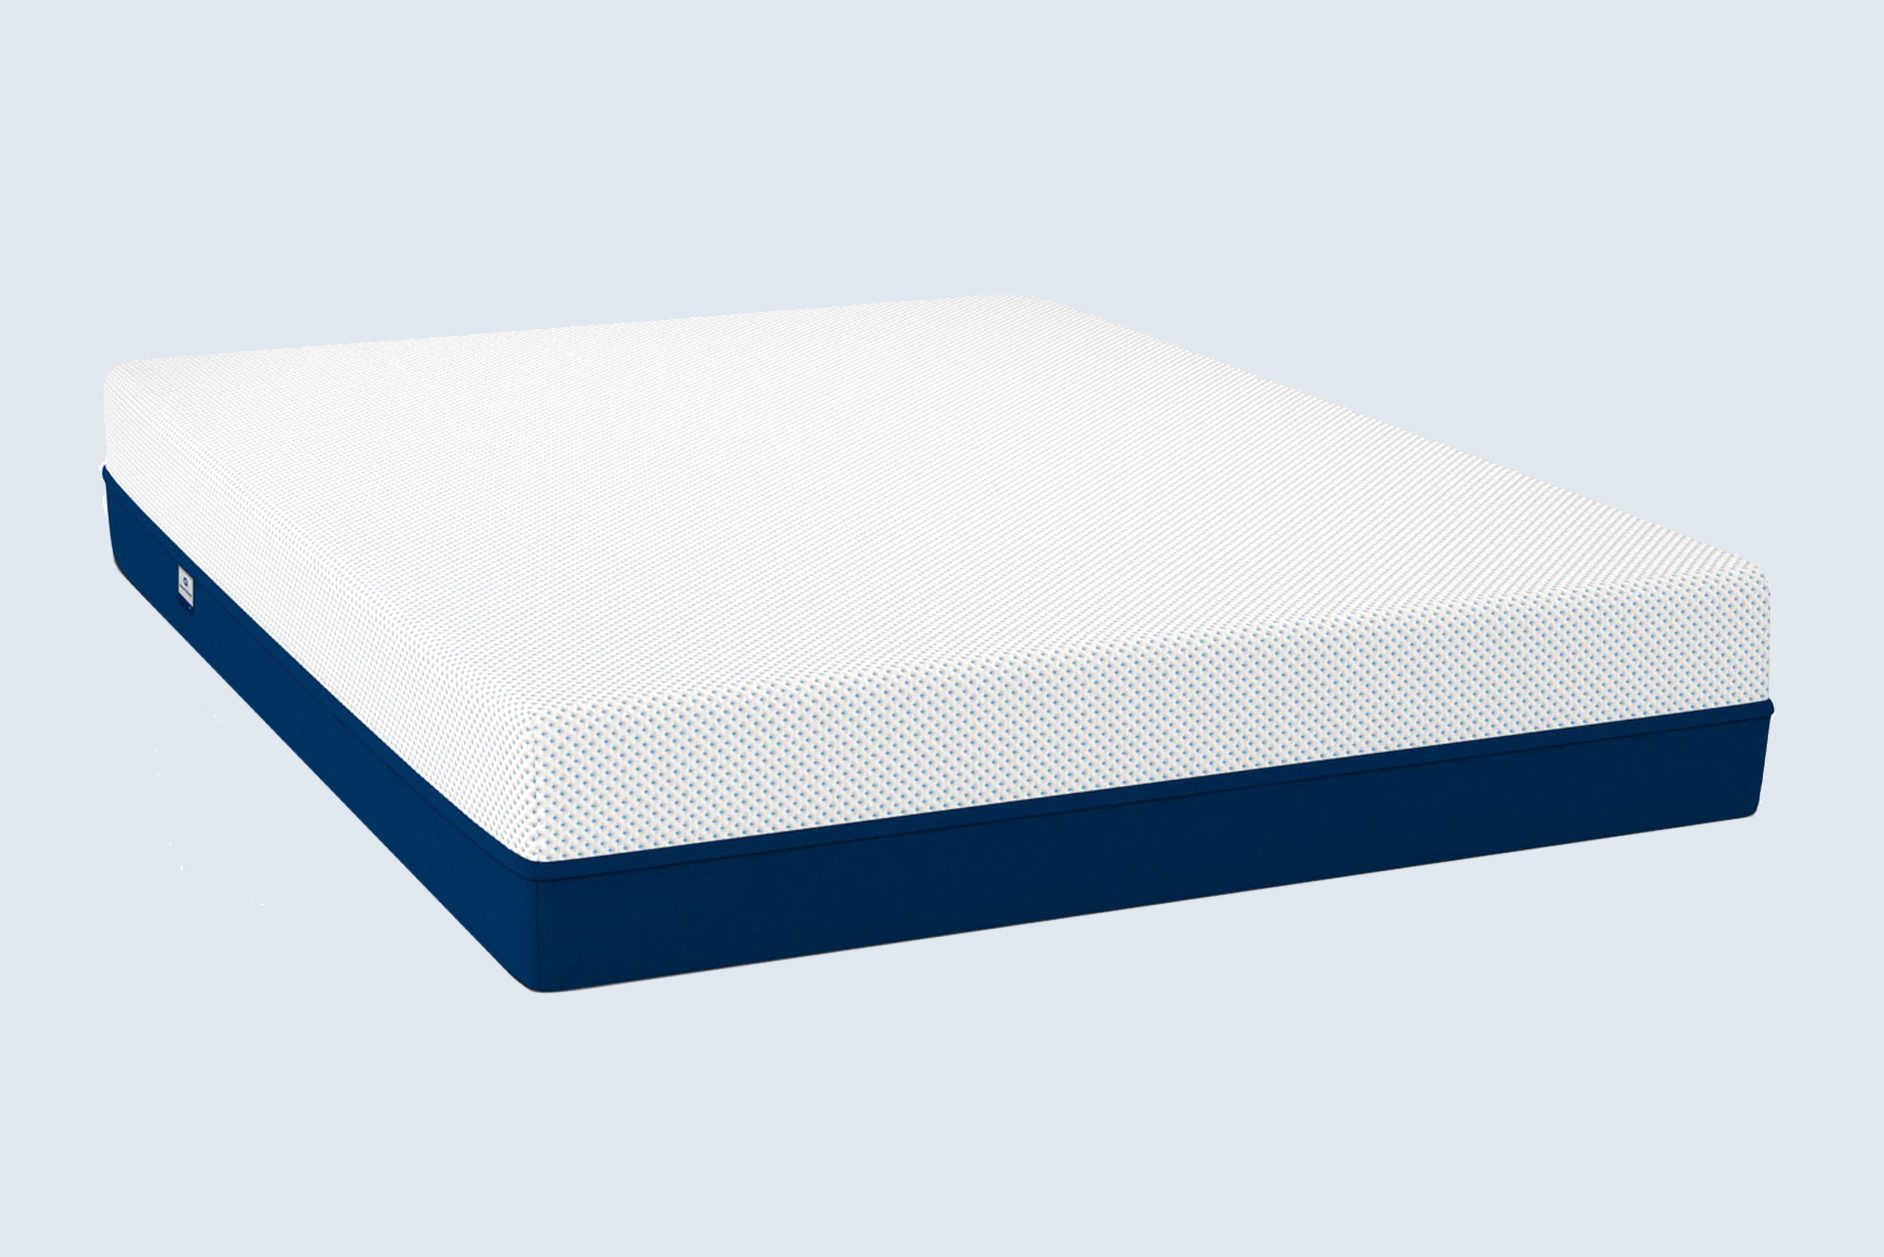 Amerisleep: 30 percent off your purchase and 2 free pillows